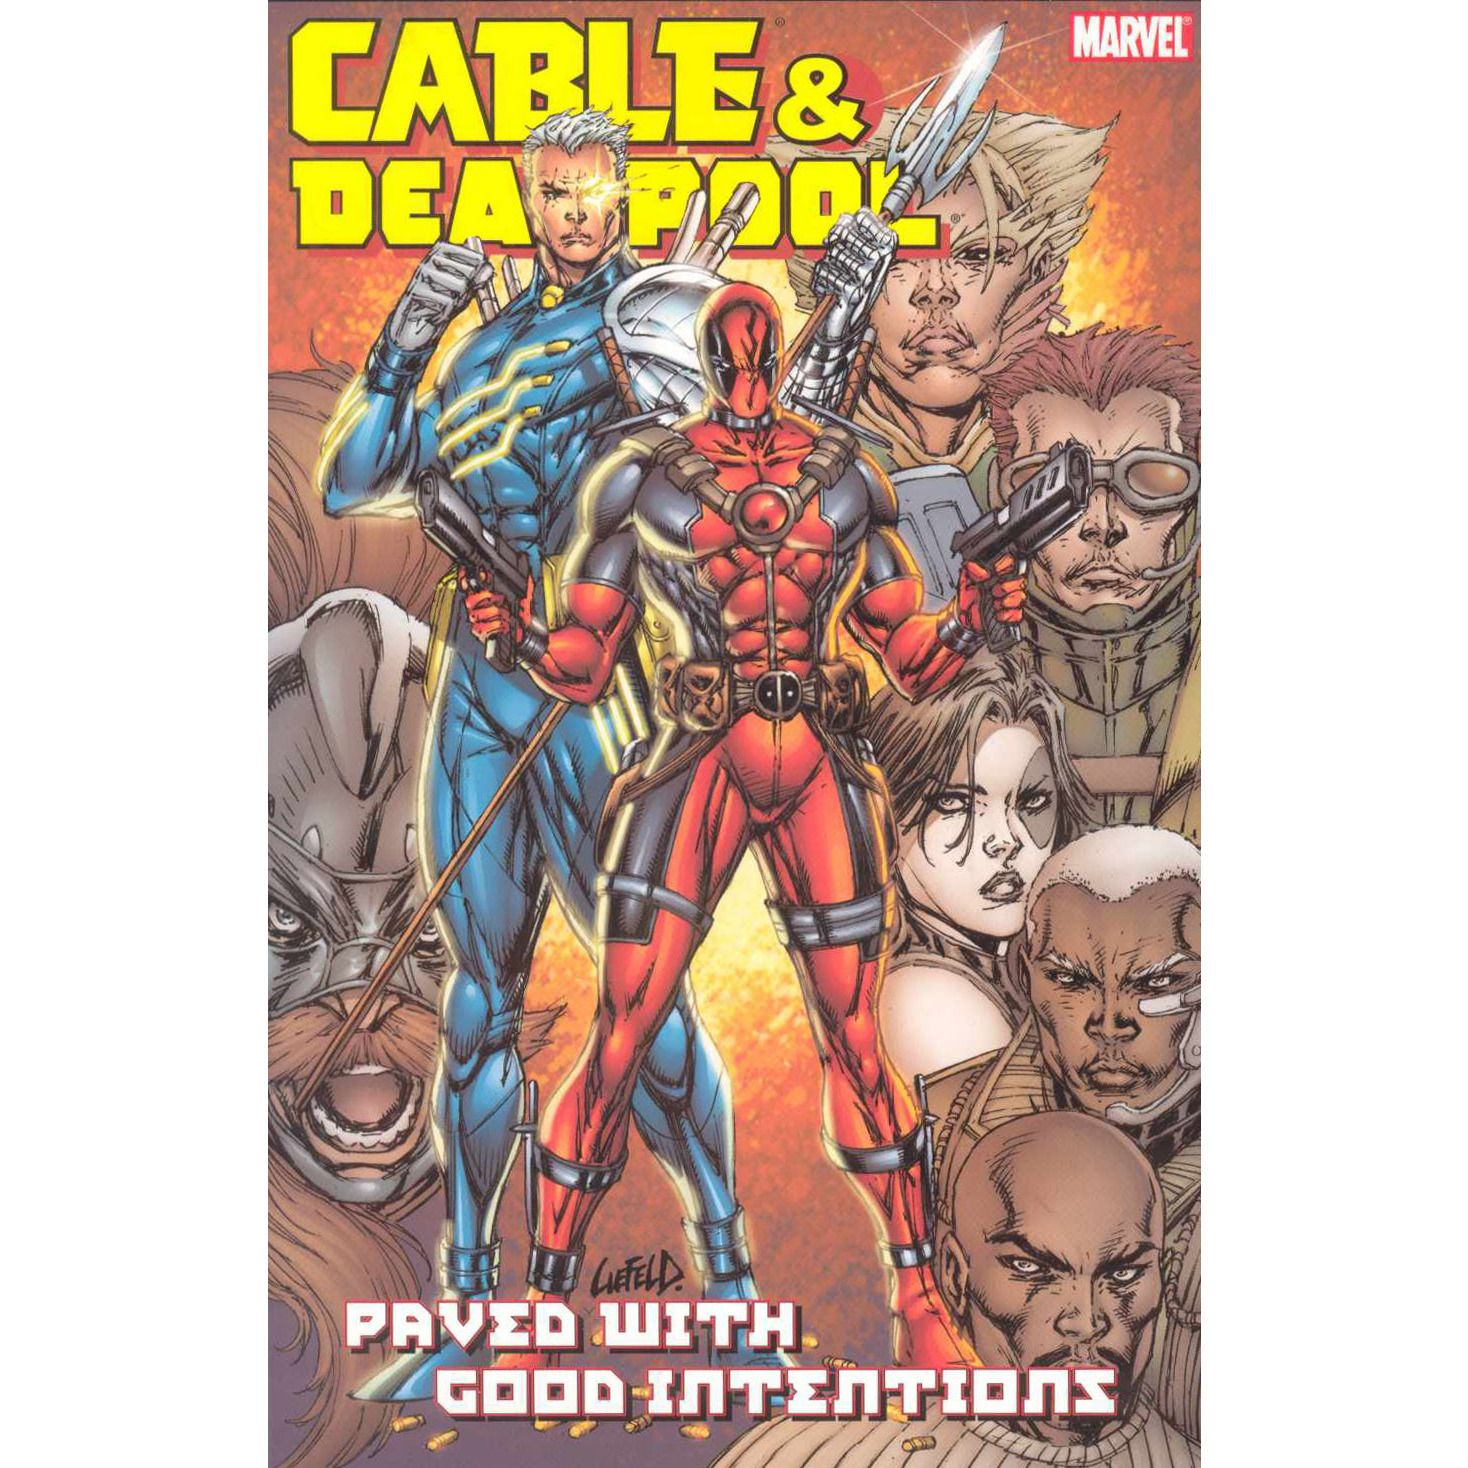 Cable & Deadpool TP VOL 06 Paved With Good Intentions Uncanny!